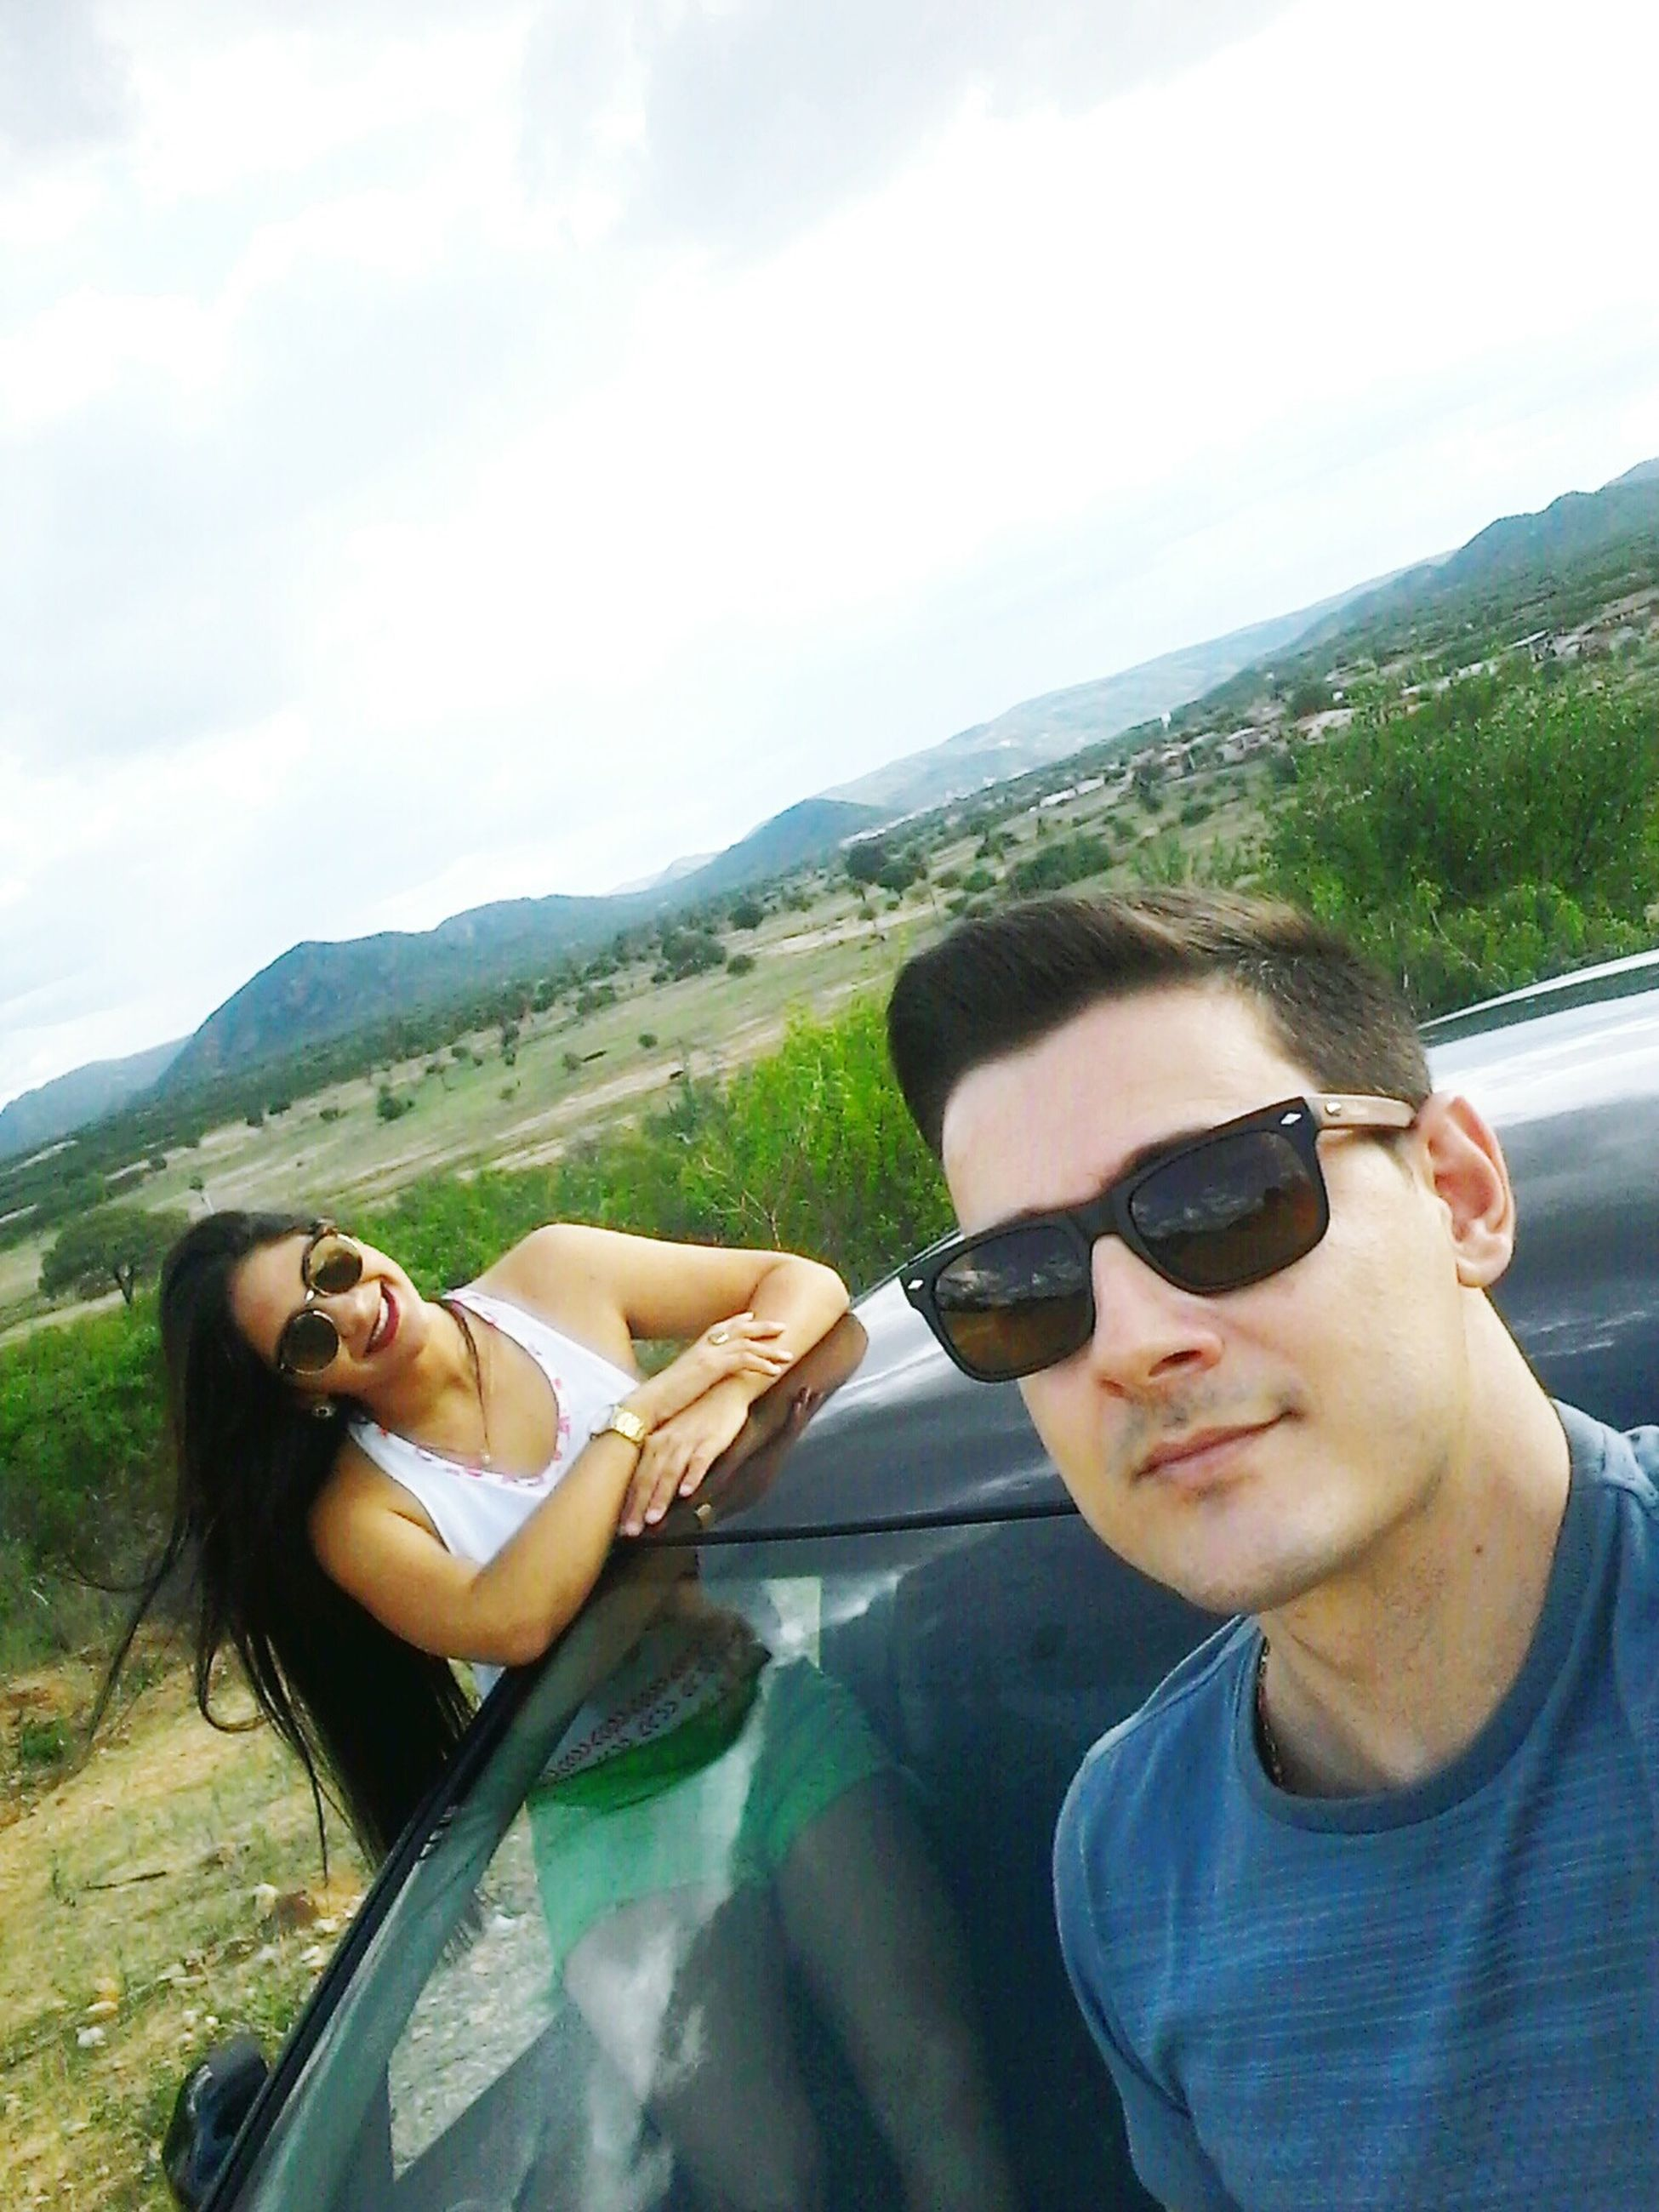 young adult, sunglasses, two people, young women, togetherness, happiness, heterosexual couple, vacations, adults only, smiling, sky, adult, friendship, summer, portrait, women, outdoors, people, bonding, day, beautiful woman, men, nature, beauty in nature, mountain